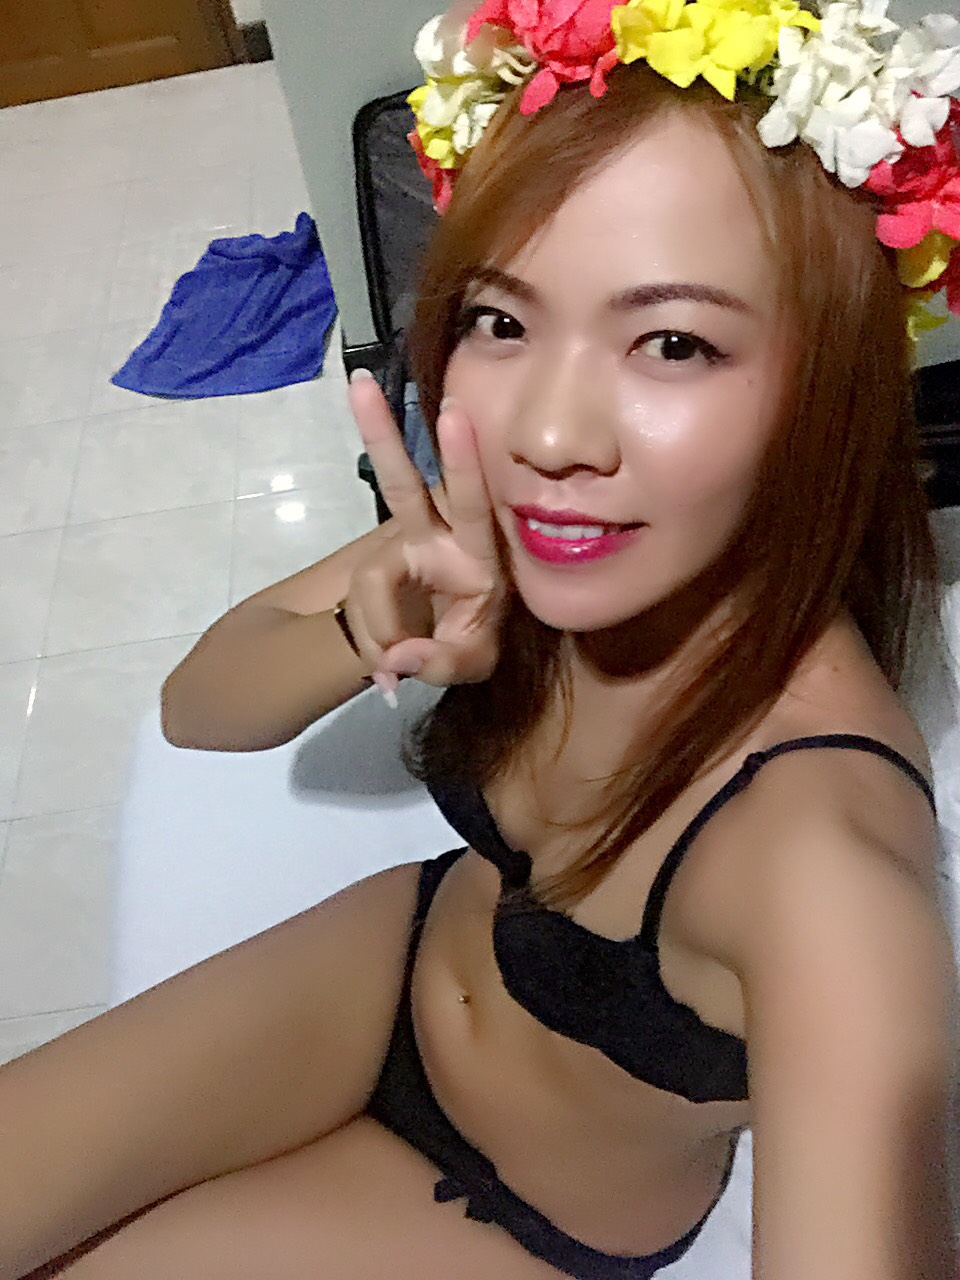 privat thai massasje oslo escort girl thai